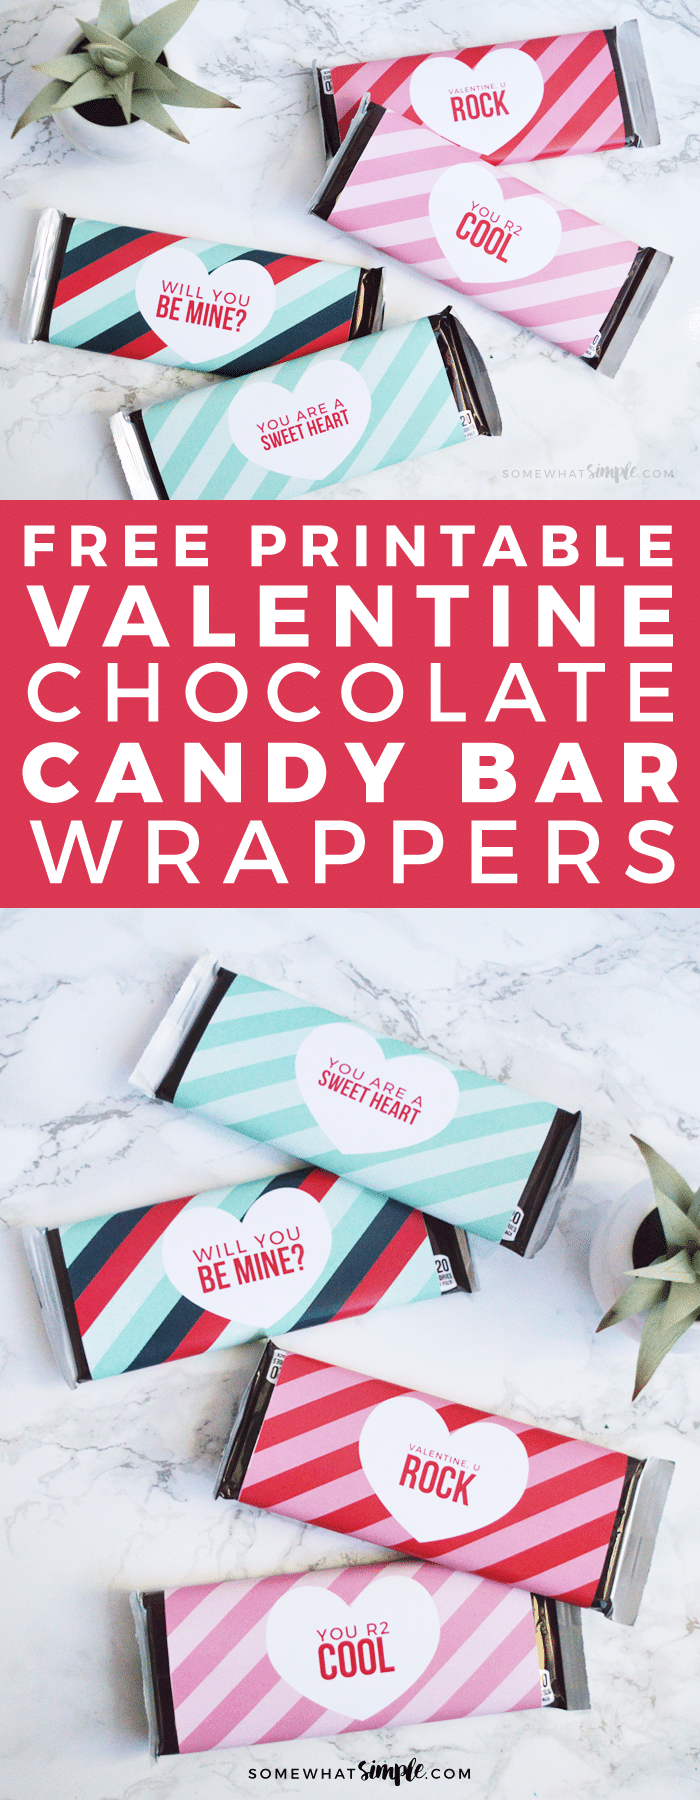 These Valentine candy bar wrappers make a simple gift that you can make in just minutes!  All you need is a box of Hershey candy bars and to download this adorable printable and you're all set!